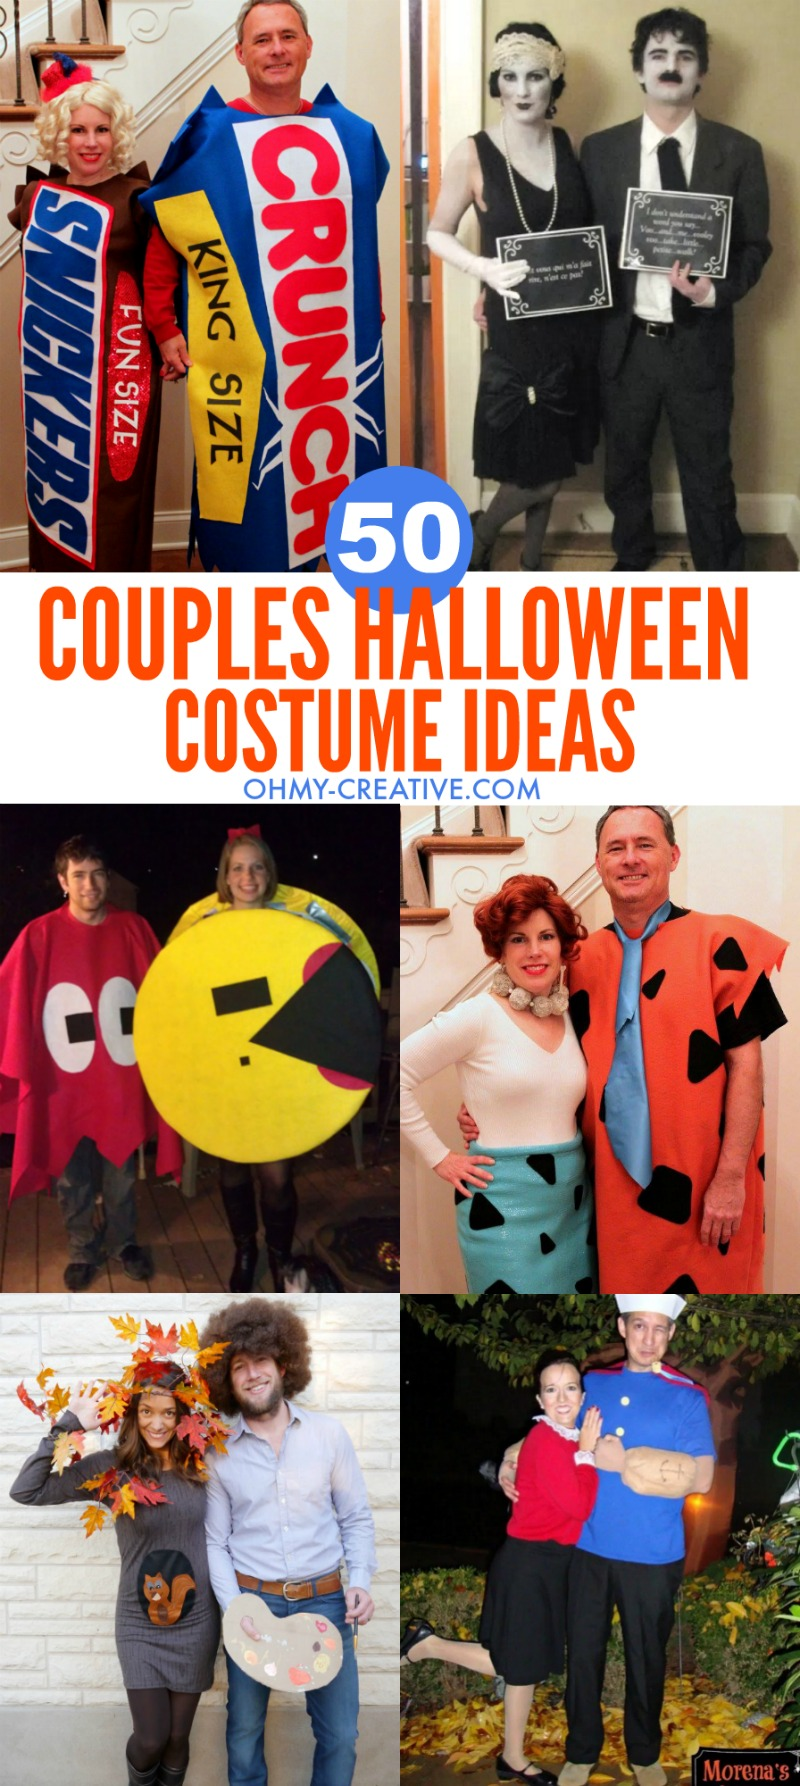 The Best 50 Couples Halloween Cosume Ideas for 2019 , Oh My